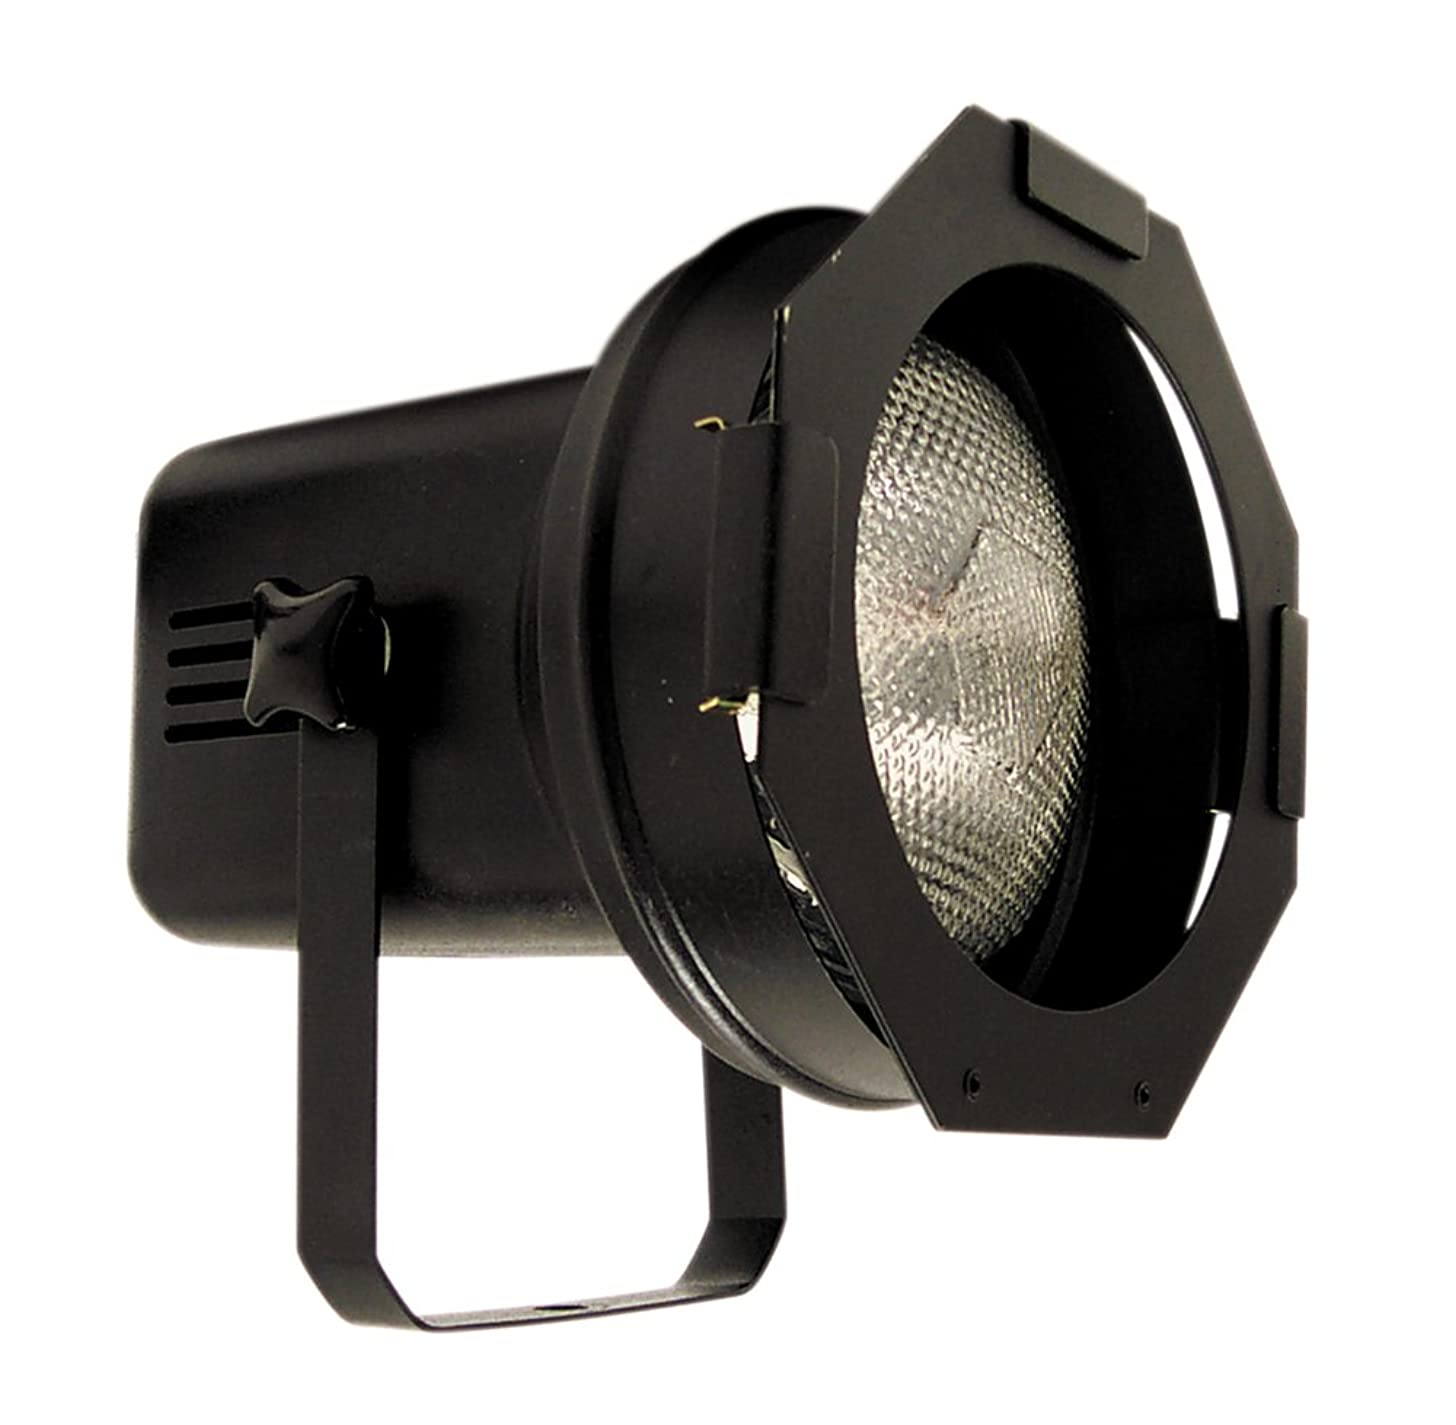 American Dj Par 38 Bl Par 38 Black Can With 150 Watt Flood Lamp